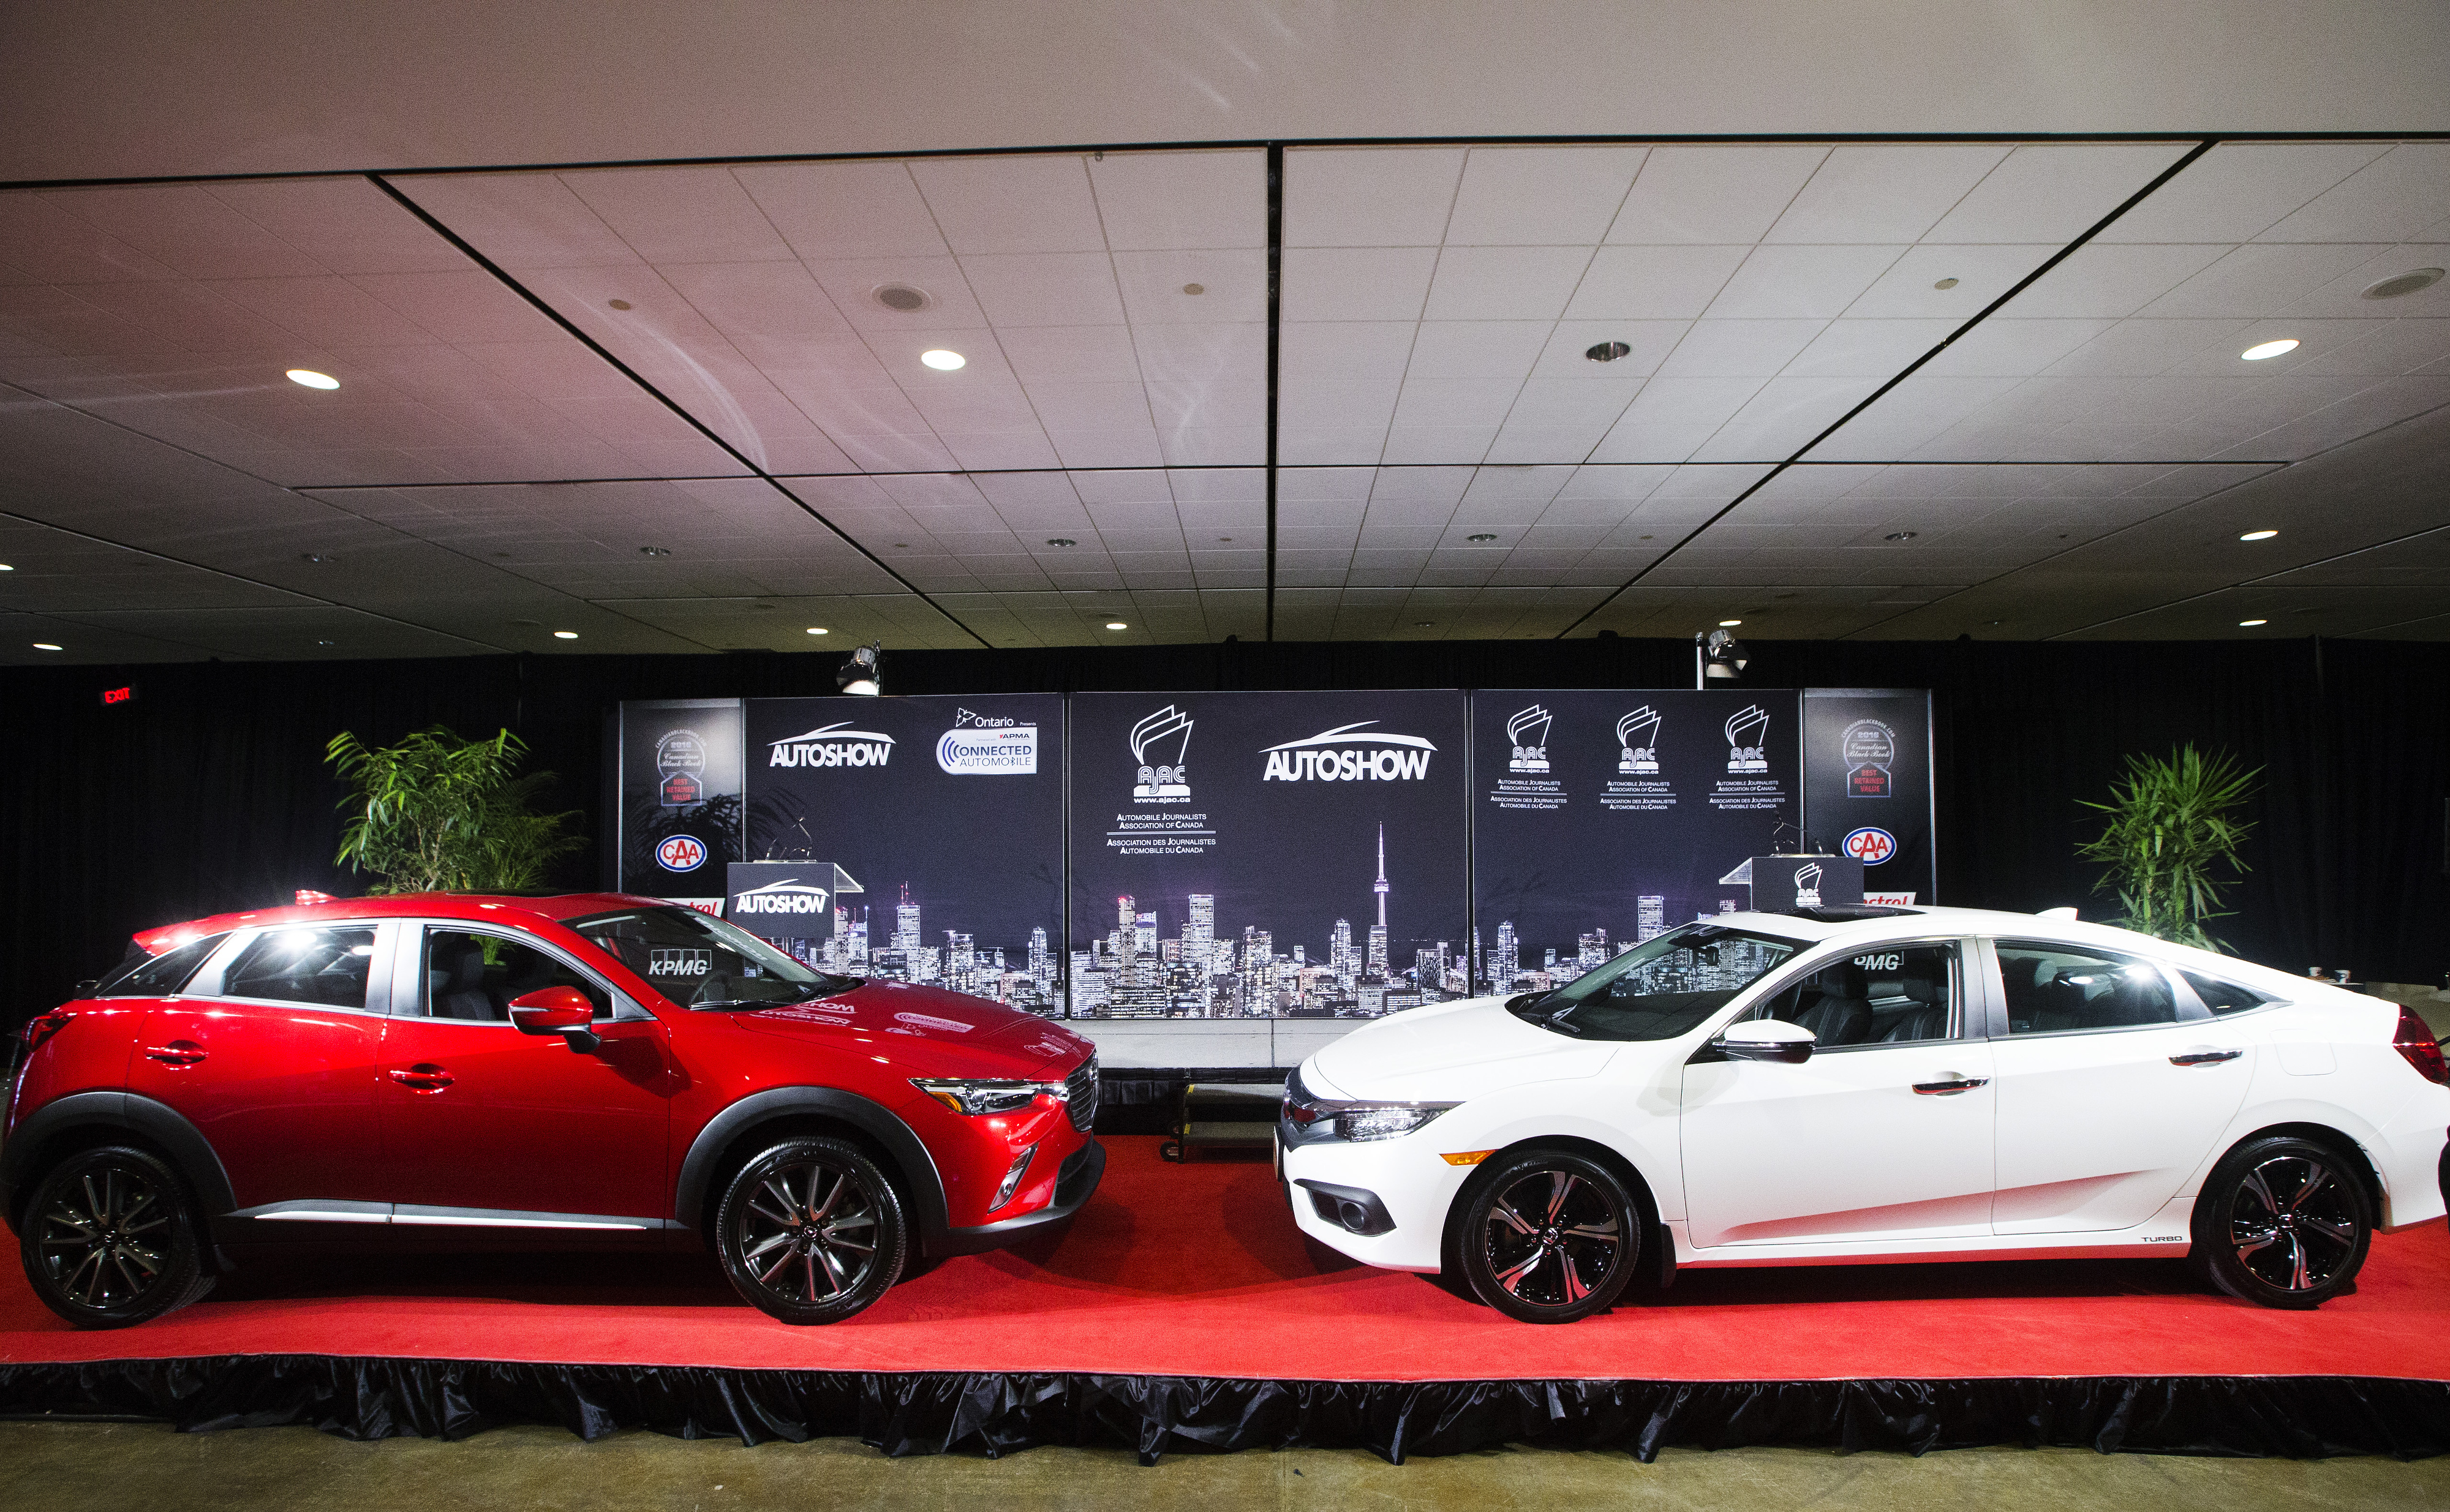 Mazda CX-3 which was declared the 2016 Canadian Utility of the Year (left) and Honda Civic which was declared 2016 Canadian Car of the Year (right).  (Photos By:Michelle Siu)